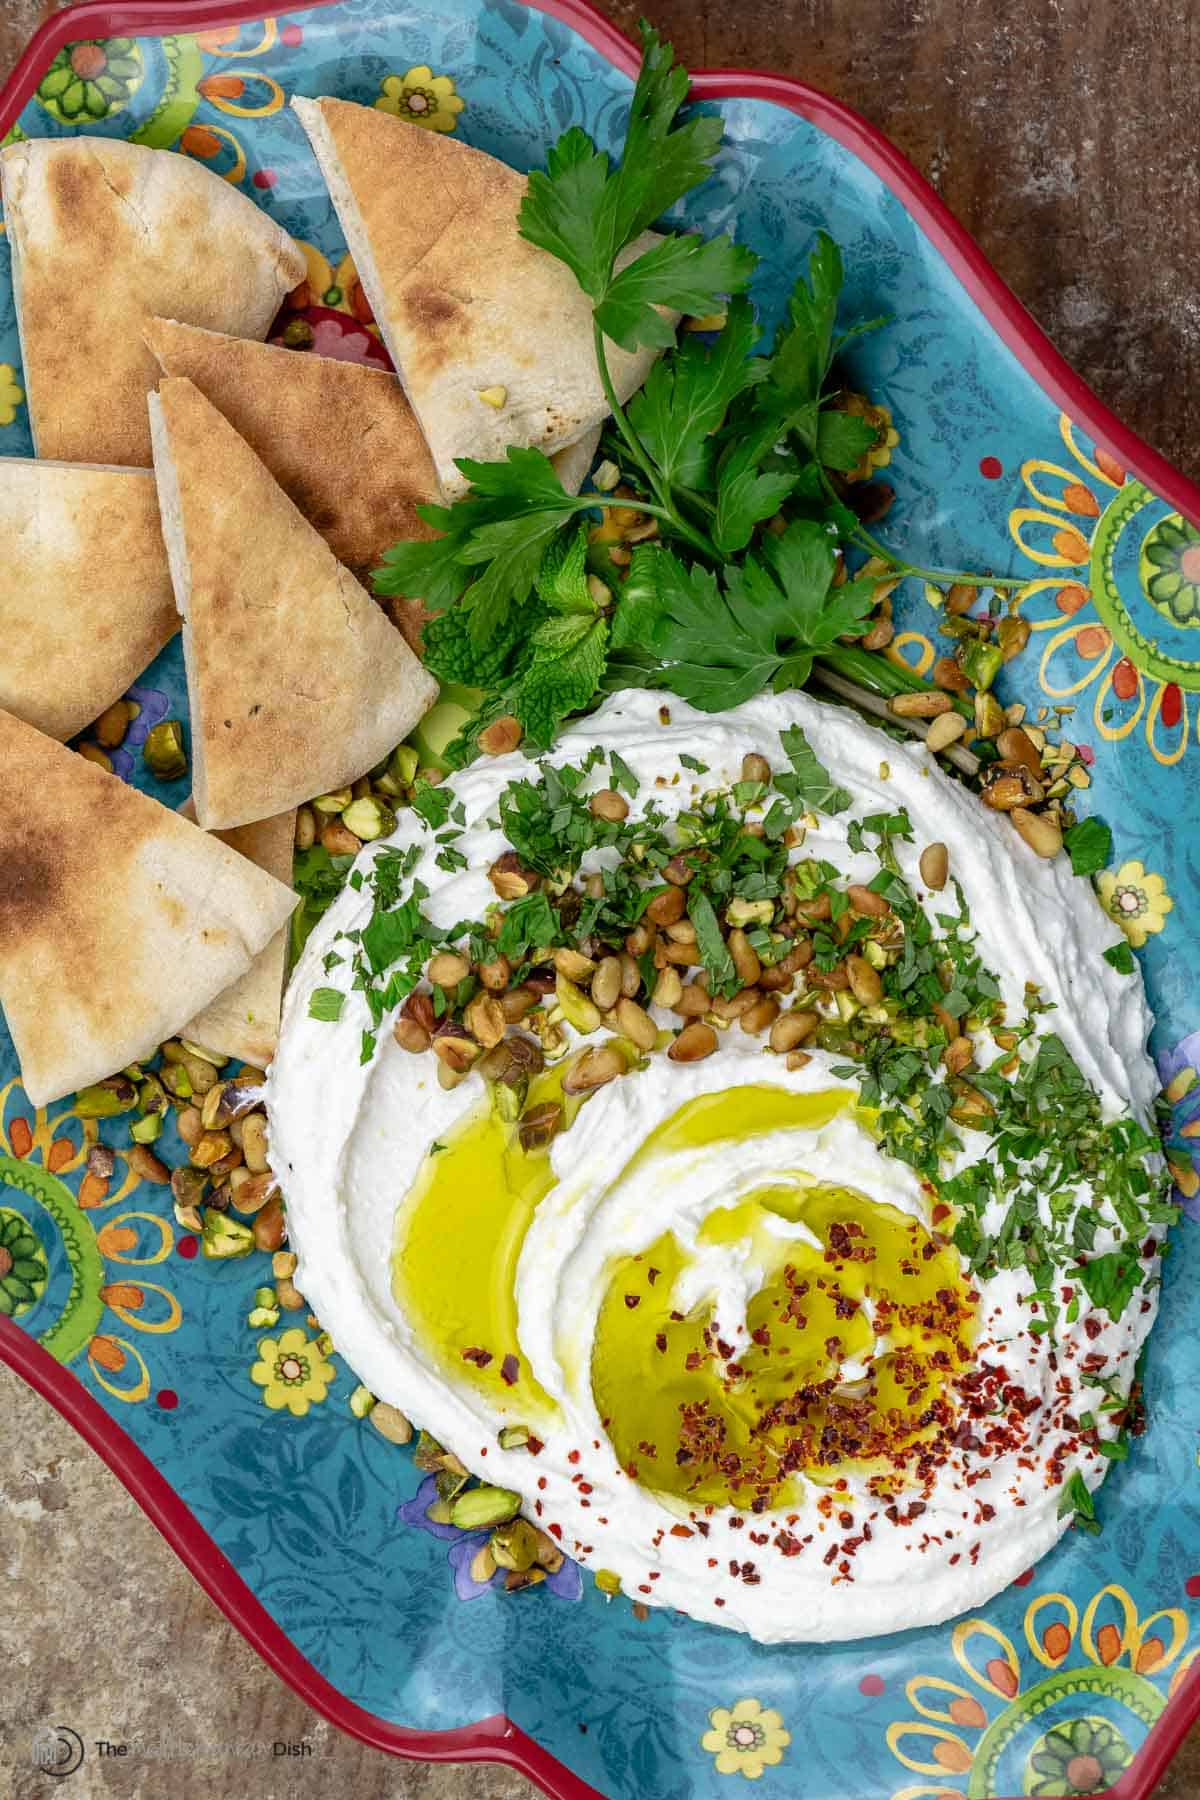 Whipped feta cheese topped with olive oil and fresh herbs on a tray with pita chips